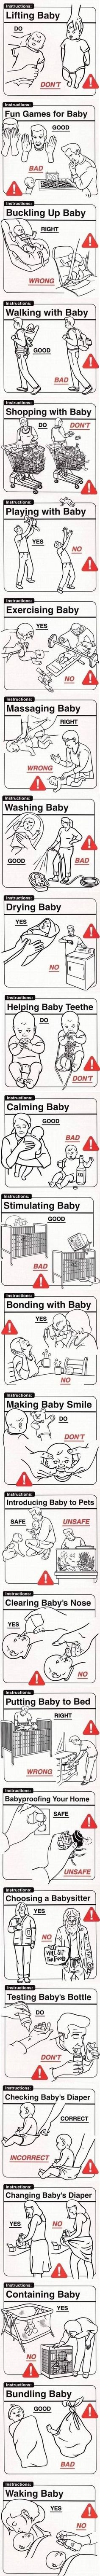 Show this to people and they'll never ask you to babysit. I do and to this day not one request for babysitting!  Telling them you loose the ones that walk, crawl and roll too works.